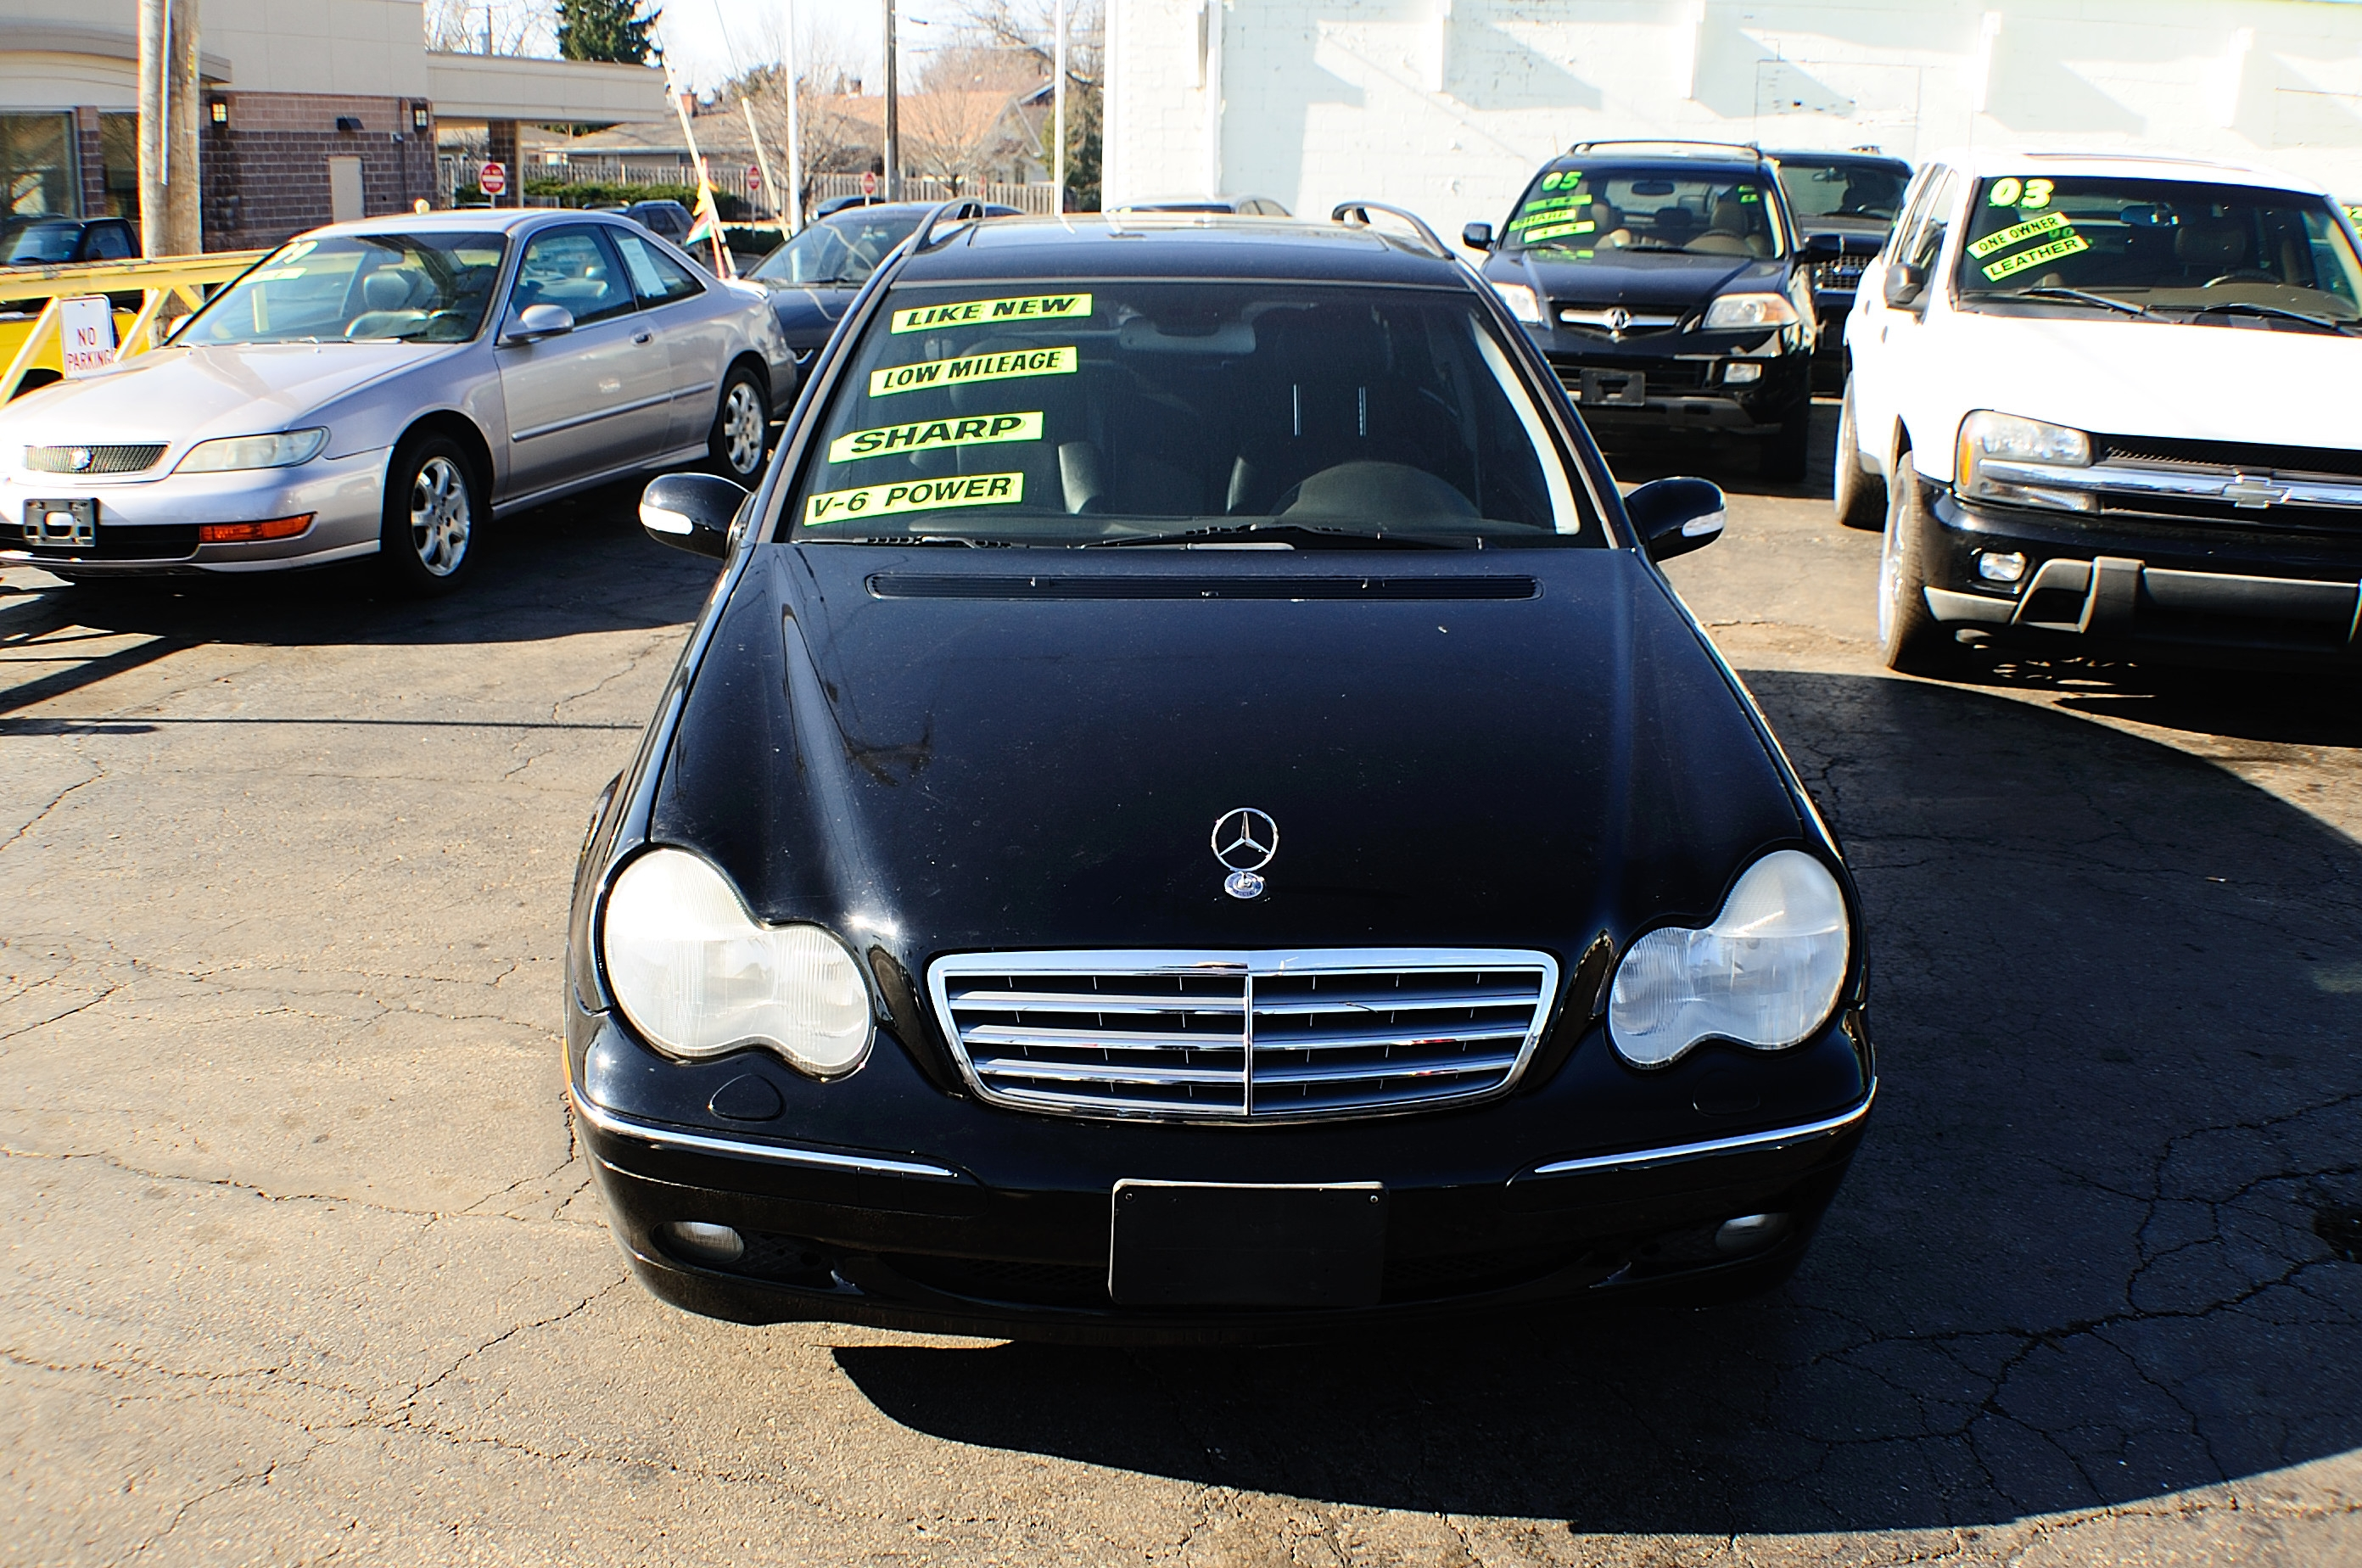 2002 Mercedes C320 Black 4Dr Wagon used car sale Gurnee Kenosha Mchenry Bannockburn